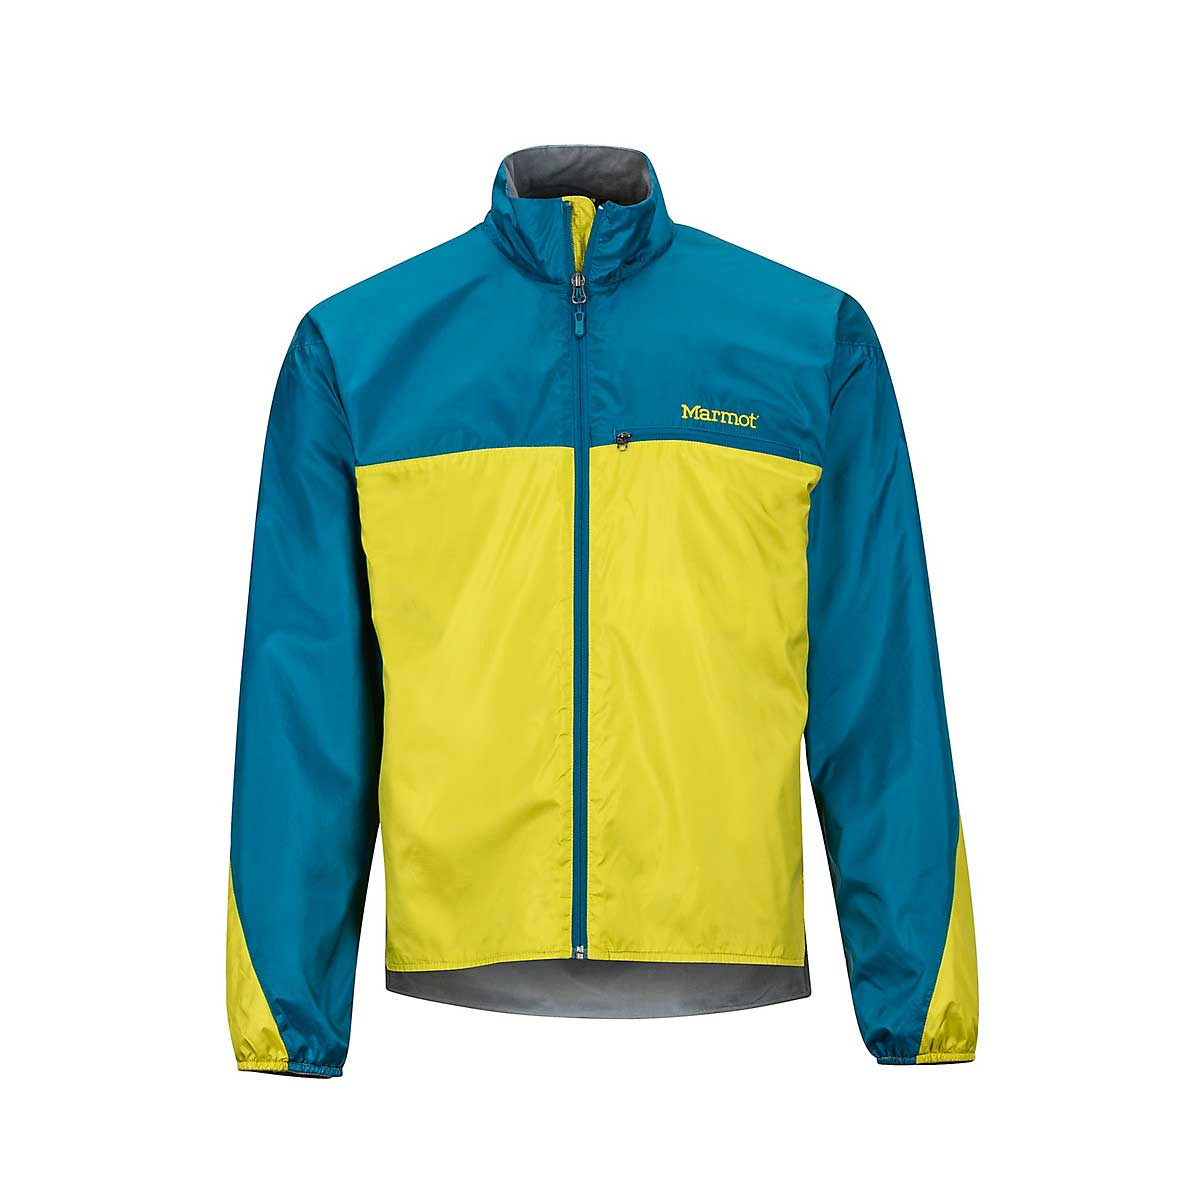 Marmot Men's DriClime Windshirt in Citronelle and Moroccan Blue